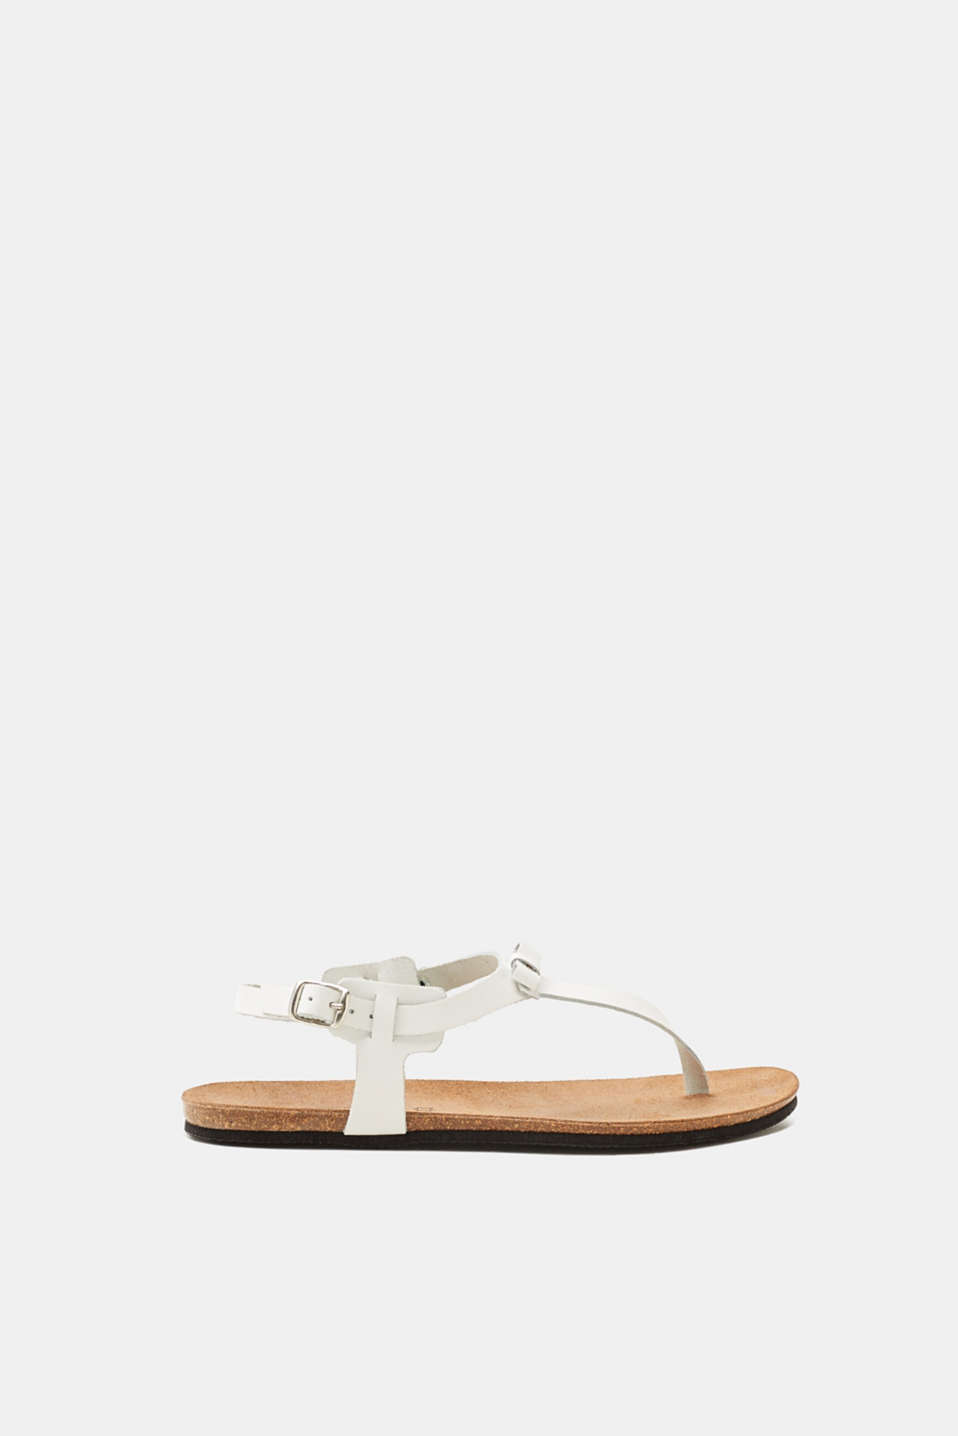 These sandals are a must have for the summer: the small bow details give these leather sandals a feminine note.